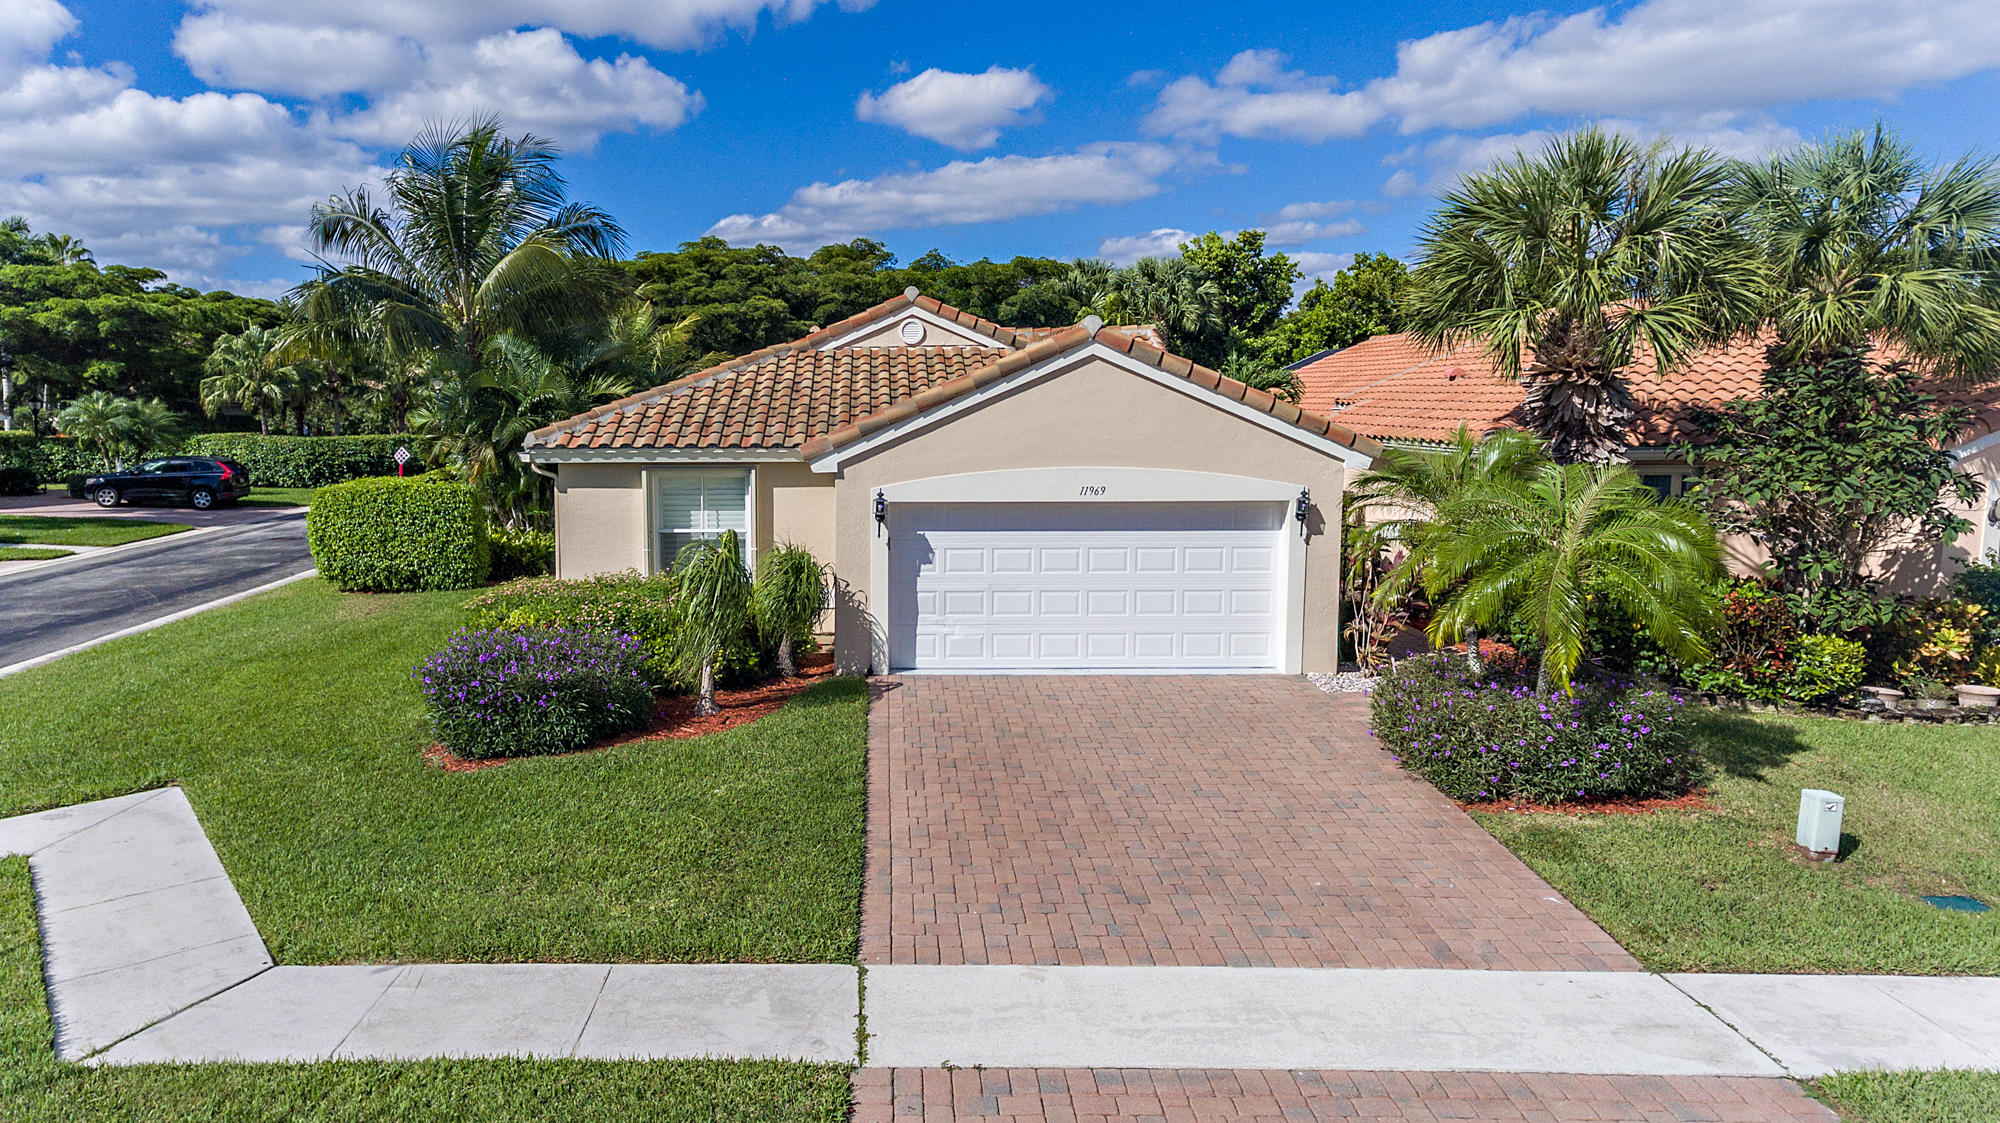 Home for sale in Cascade Lakes Boynton Beach Florida